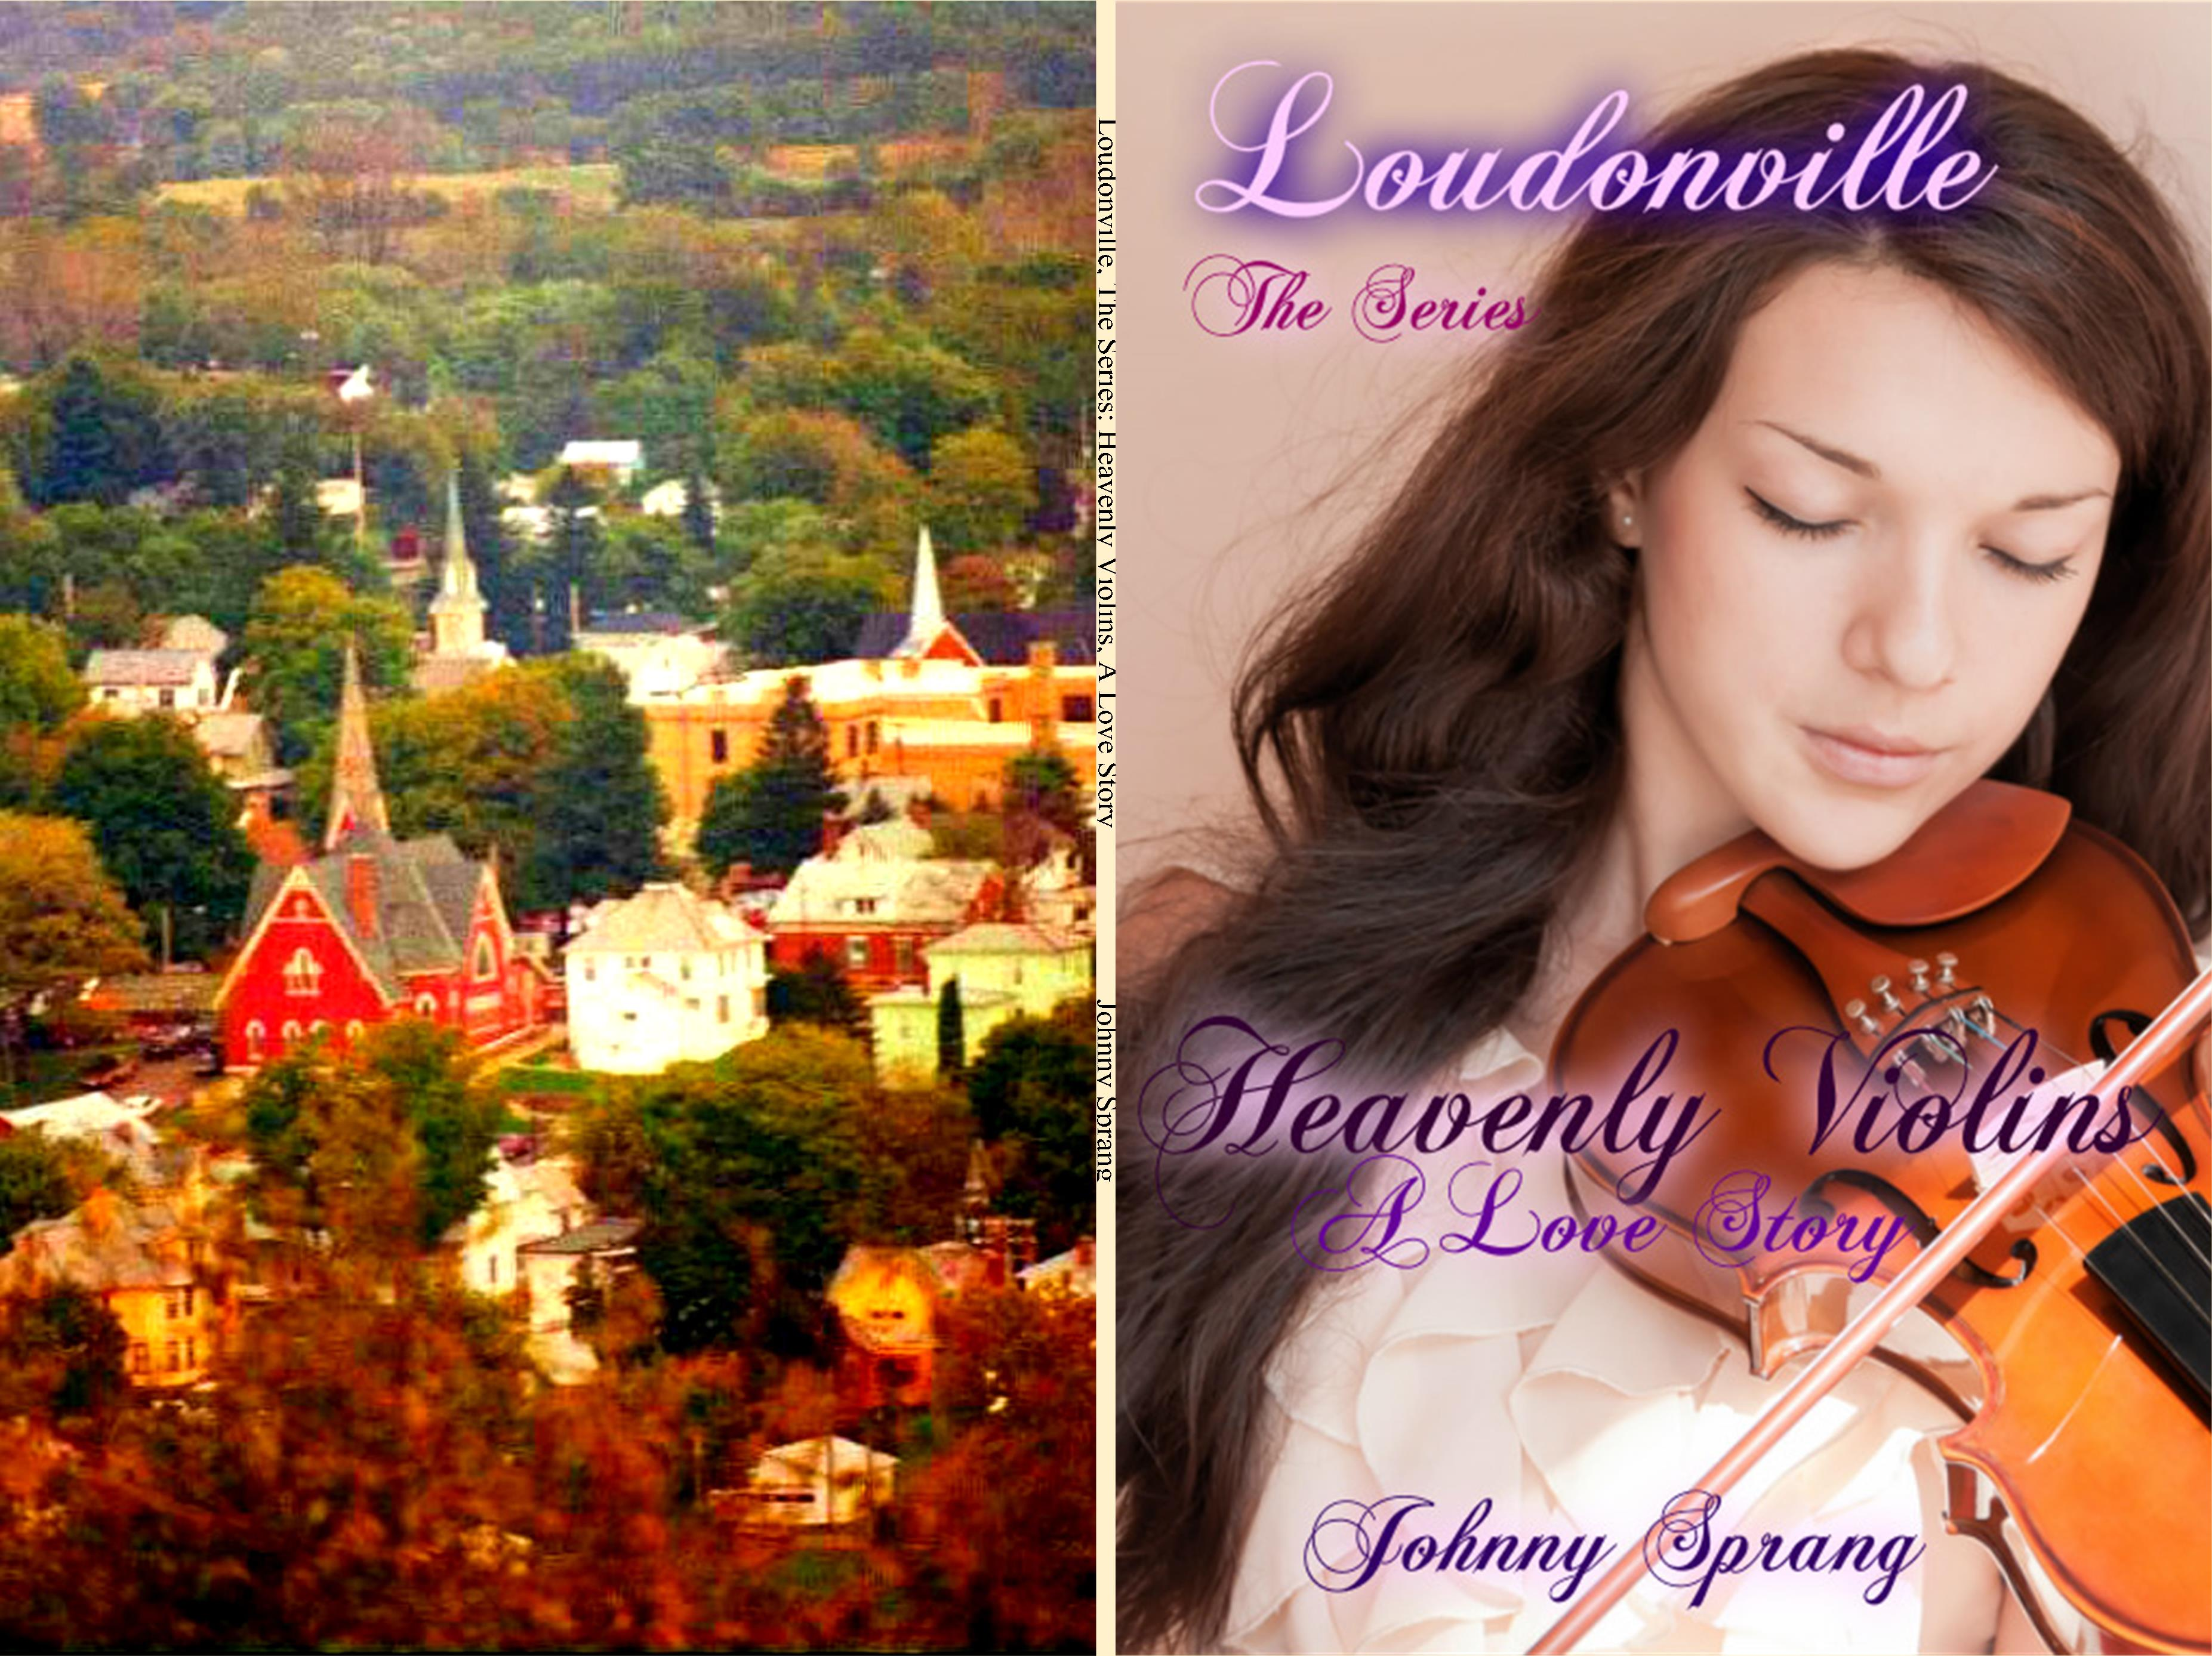 Loudonville, The Series: Heavenly Violins, A Love Story cover image